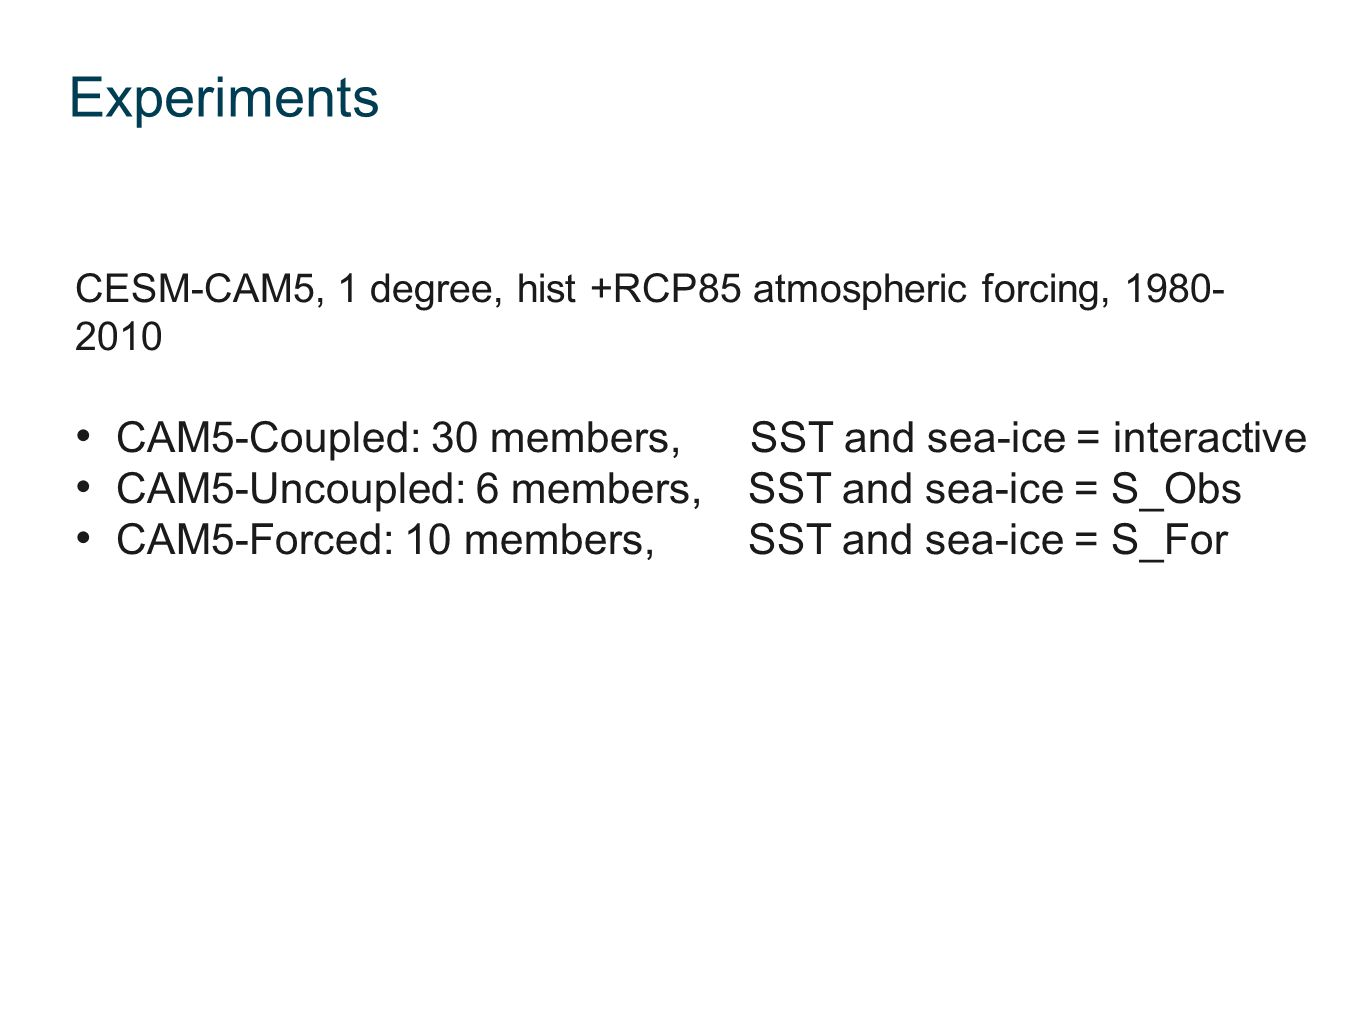 Experiments CAM5-Coupled: 30 members, SST and sea-ice = interactive